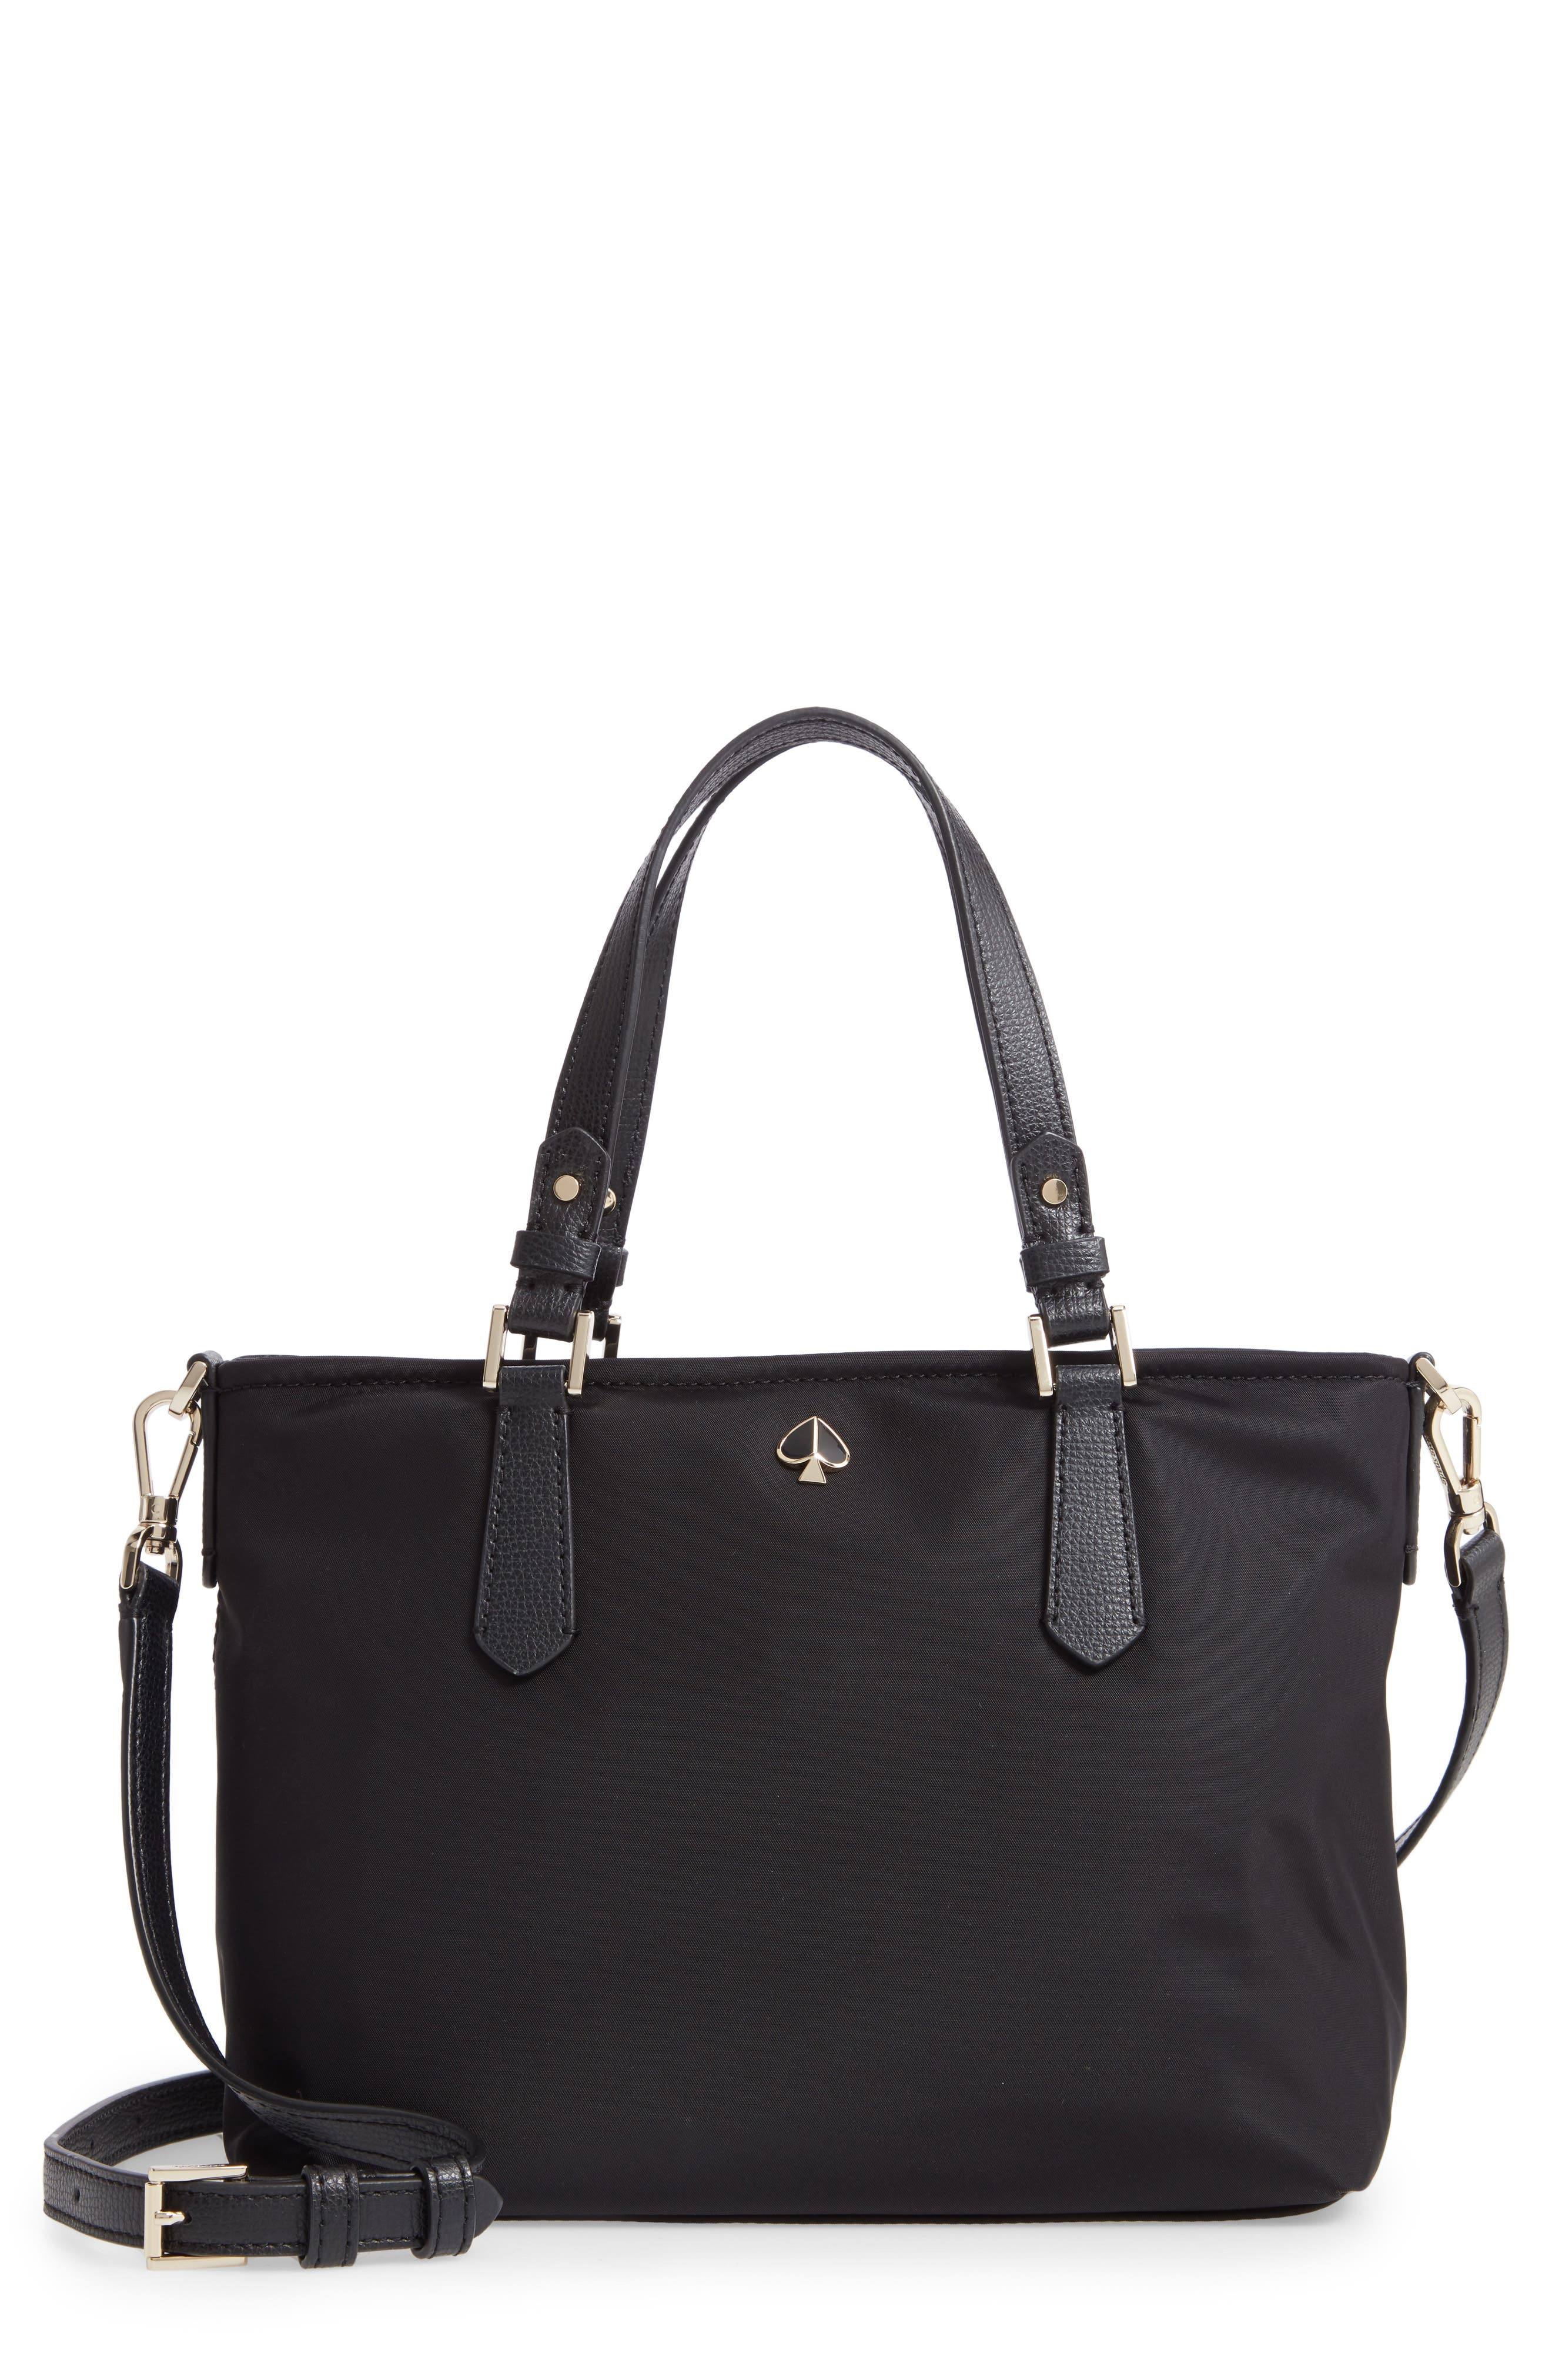 Kate Spade New York Bags small taylor nylon satchel